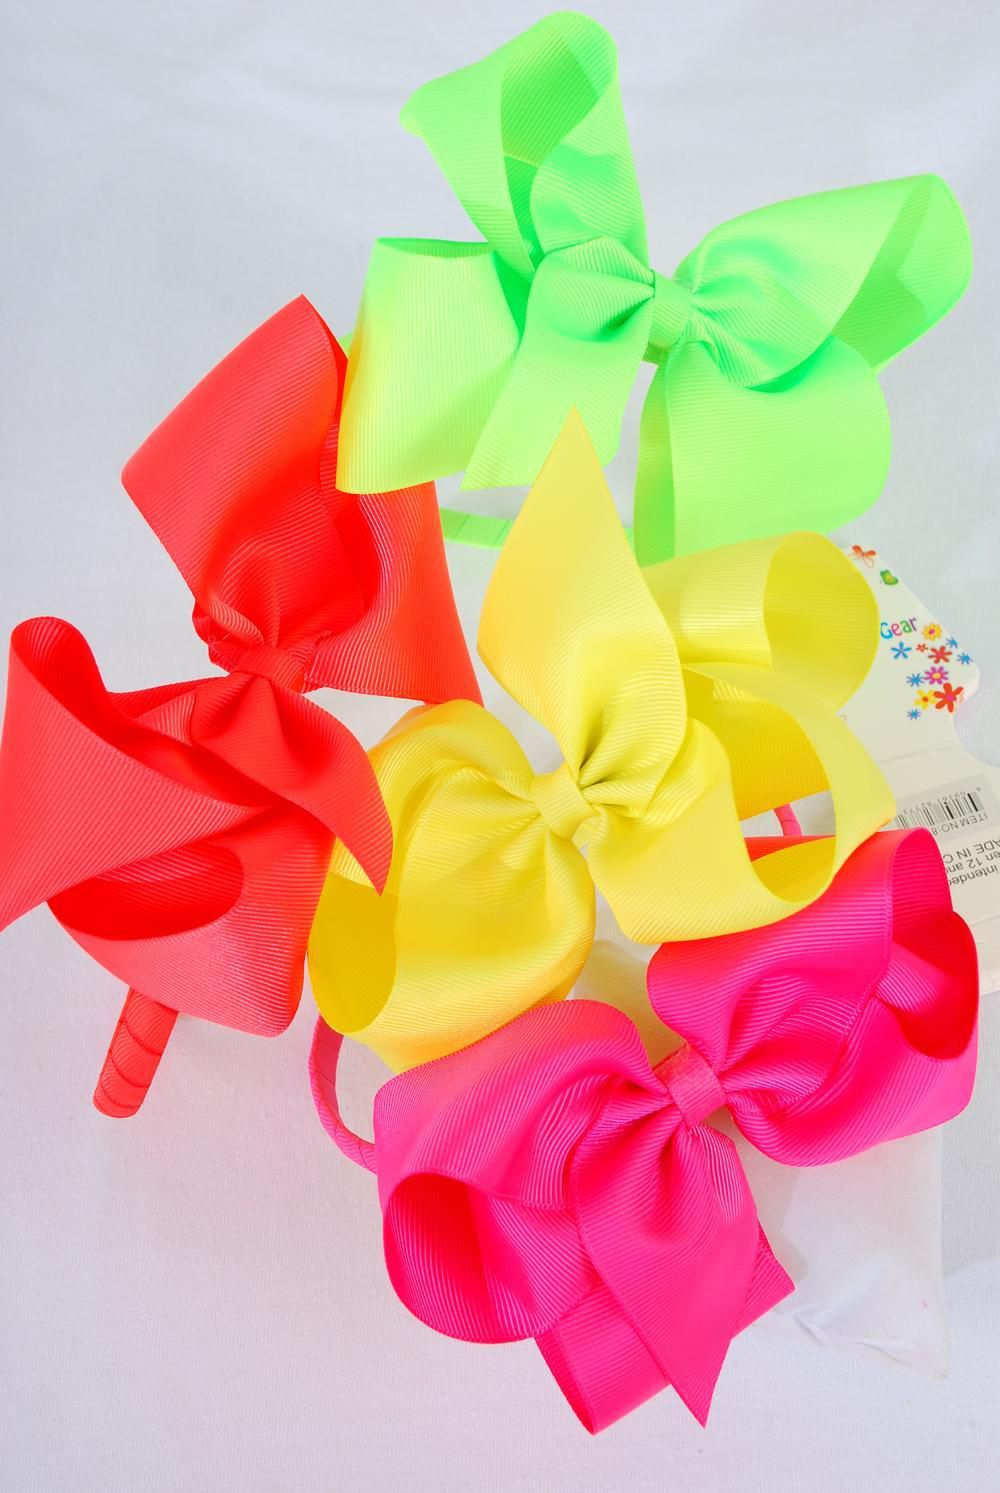 "Headband Horseshoe Jumbo Grosgrain Bow-tie Neon Mix/DZ **Neon** Bow Size-6""x 5"" Wide,3 of each Neon Color Asst,Hang tag & UPC Code,Clear Box -"